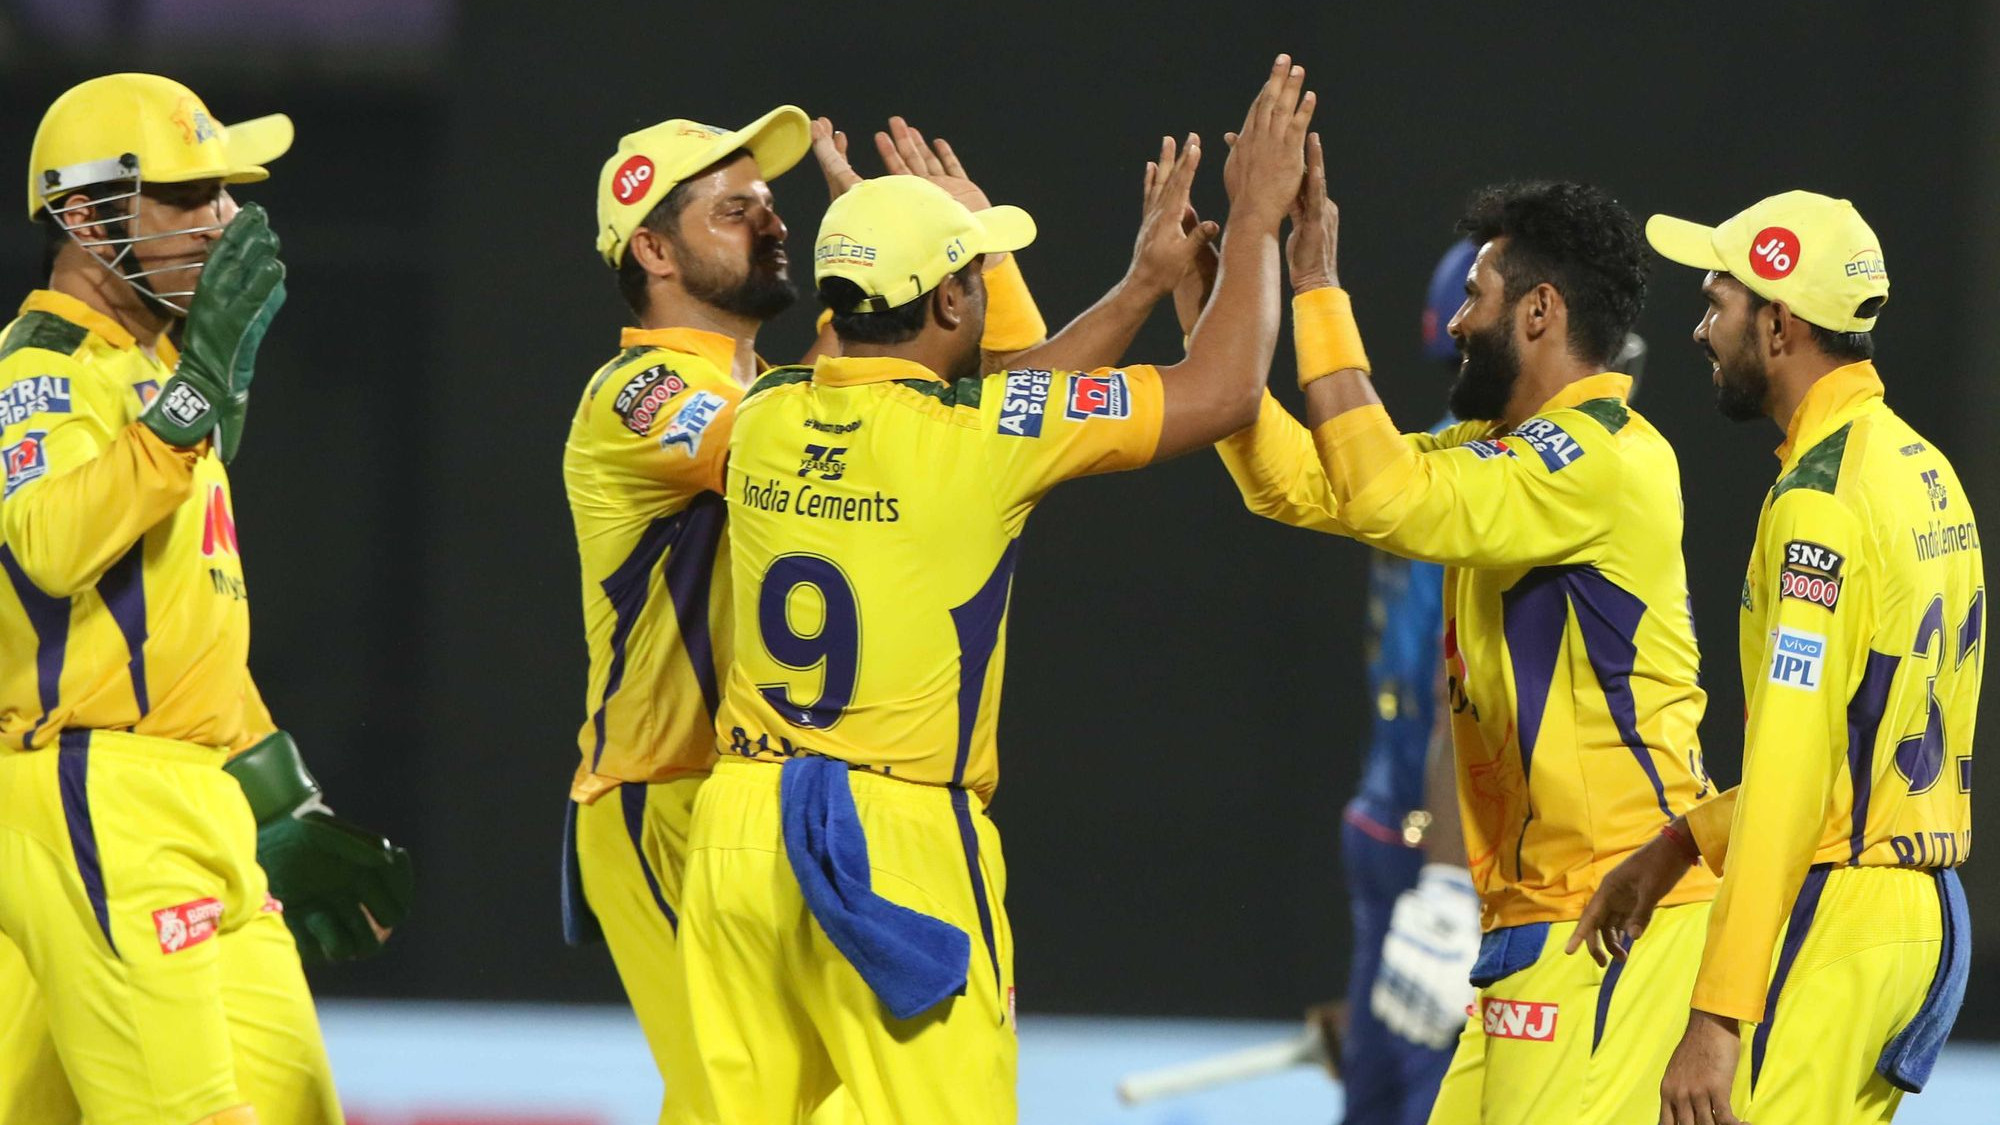 IPL 2021: Three members of CSK contingent test COVID-19 positive; all the players test negative